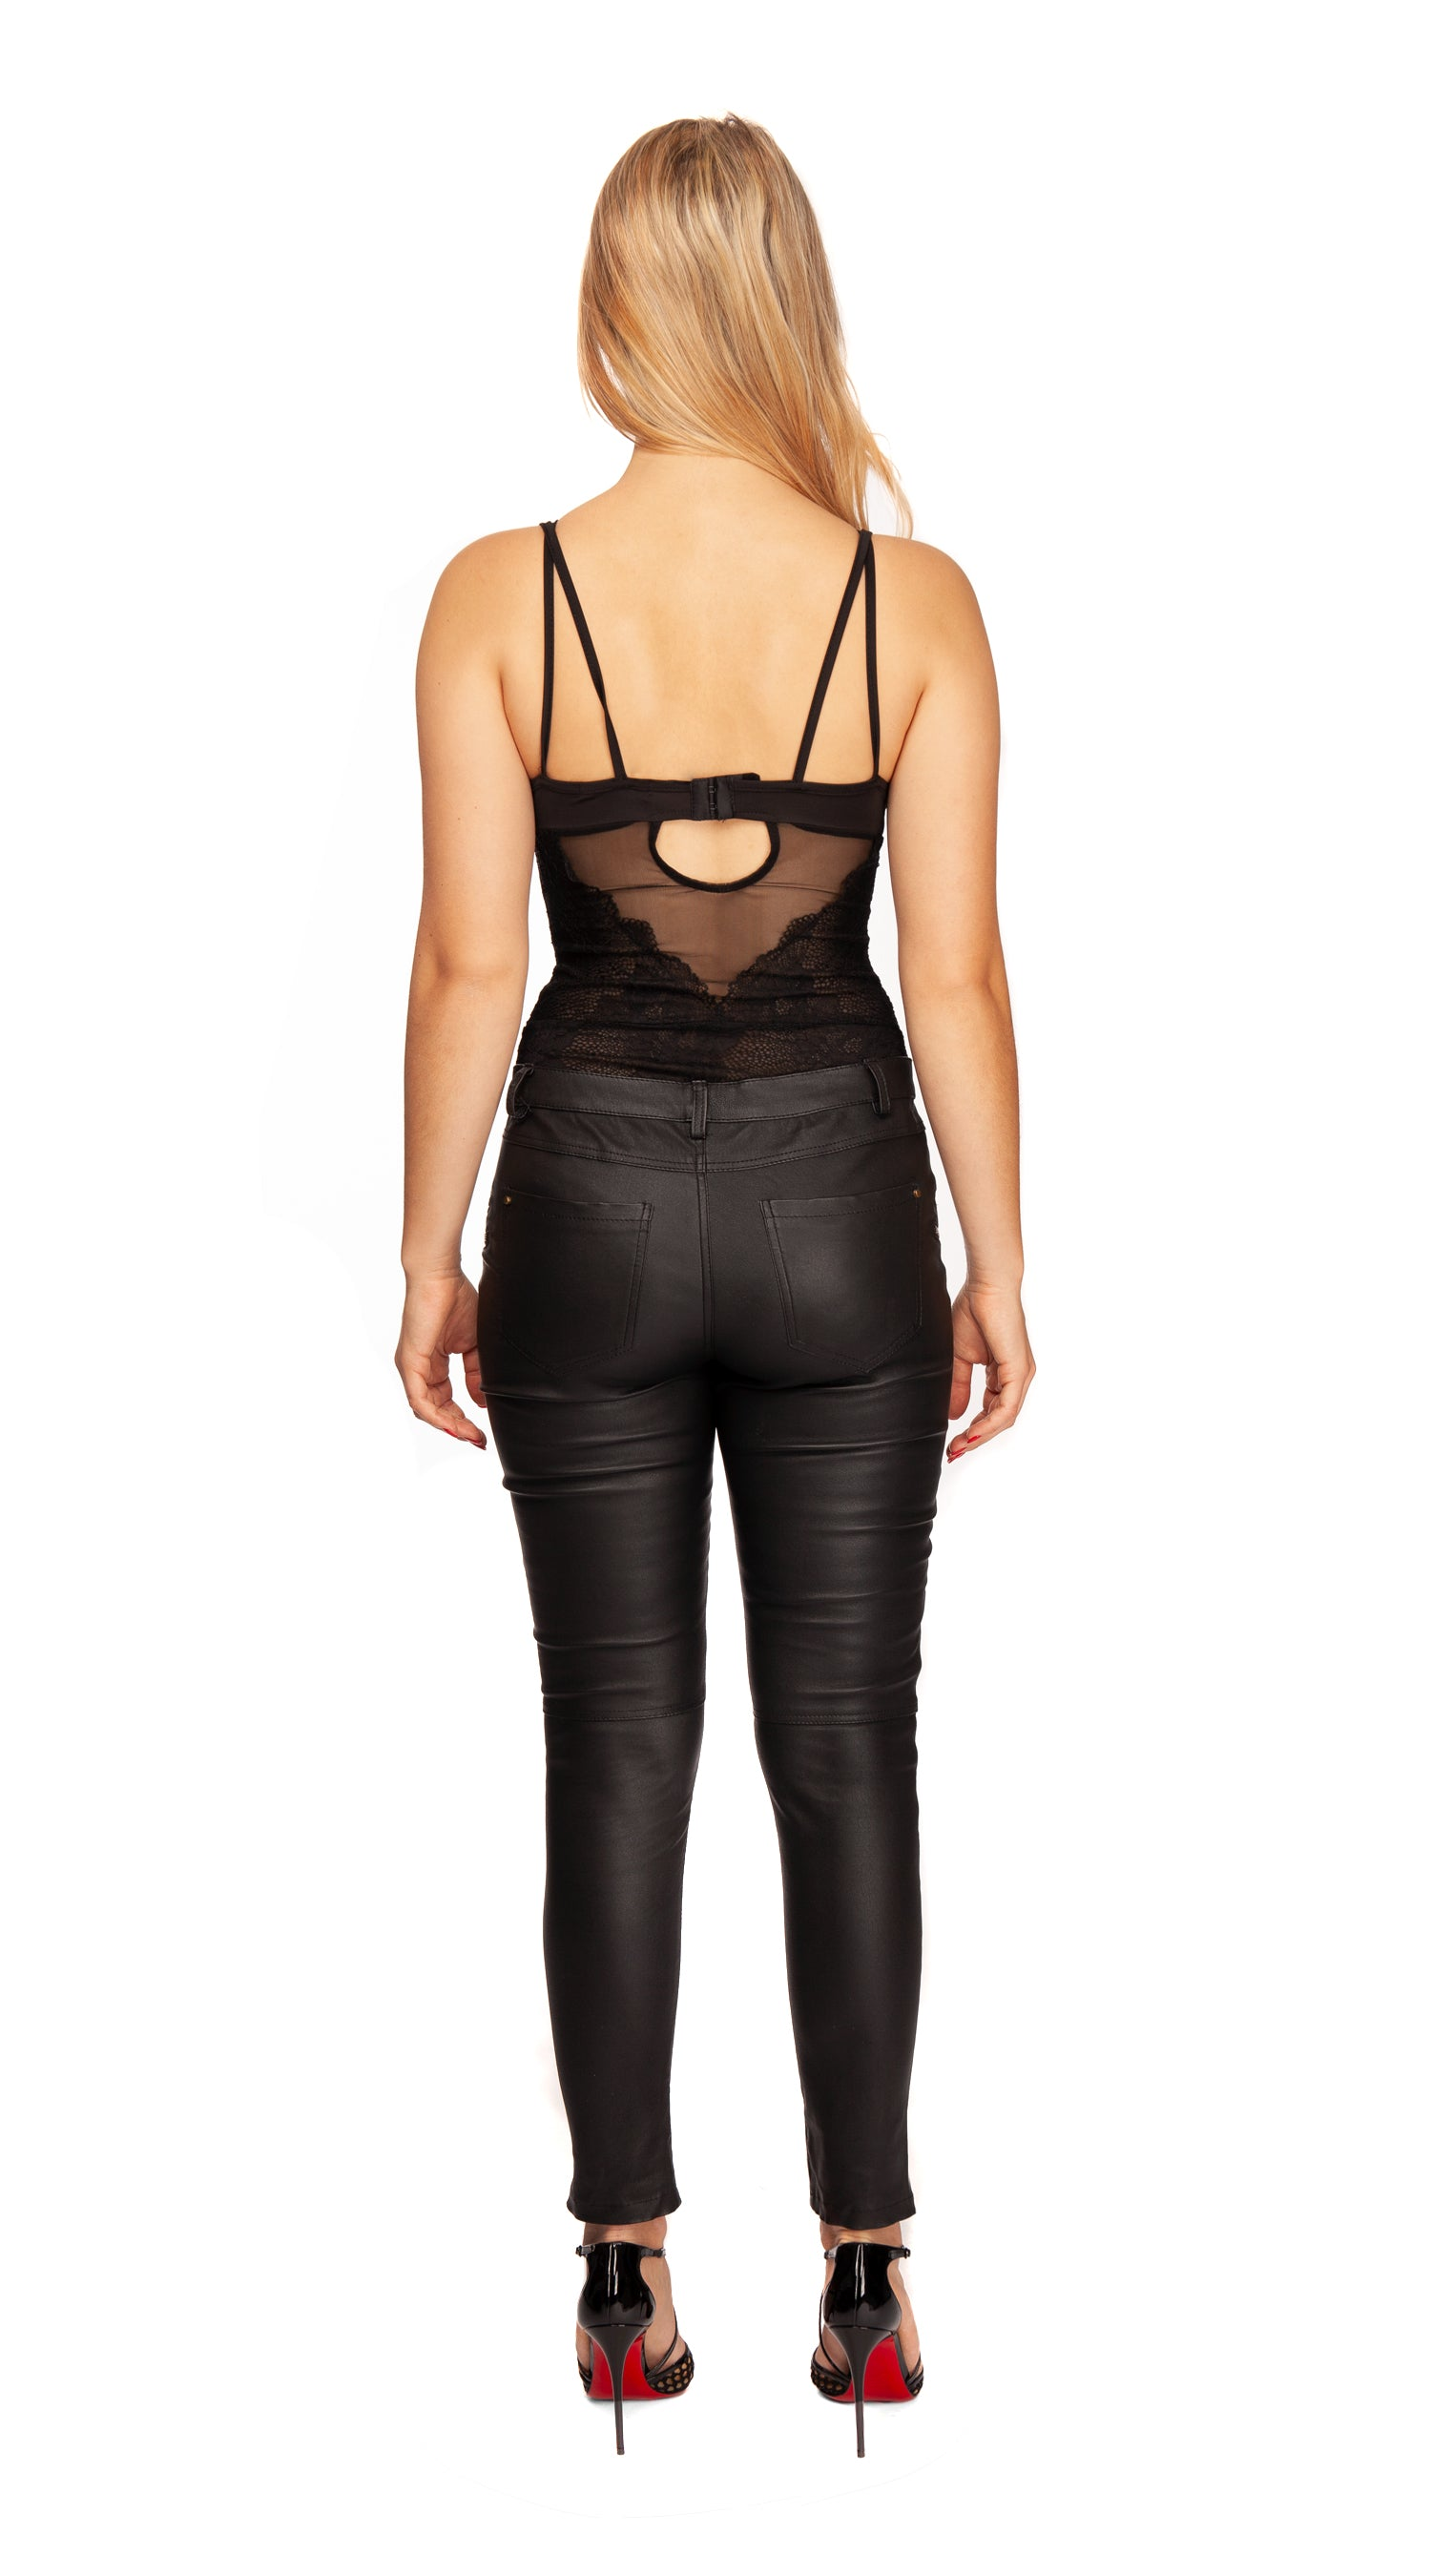 Luxy High Waisted Leather Pants